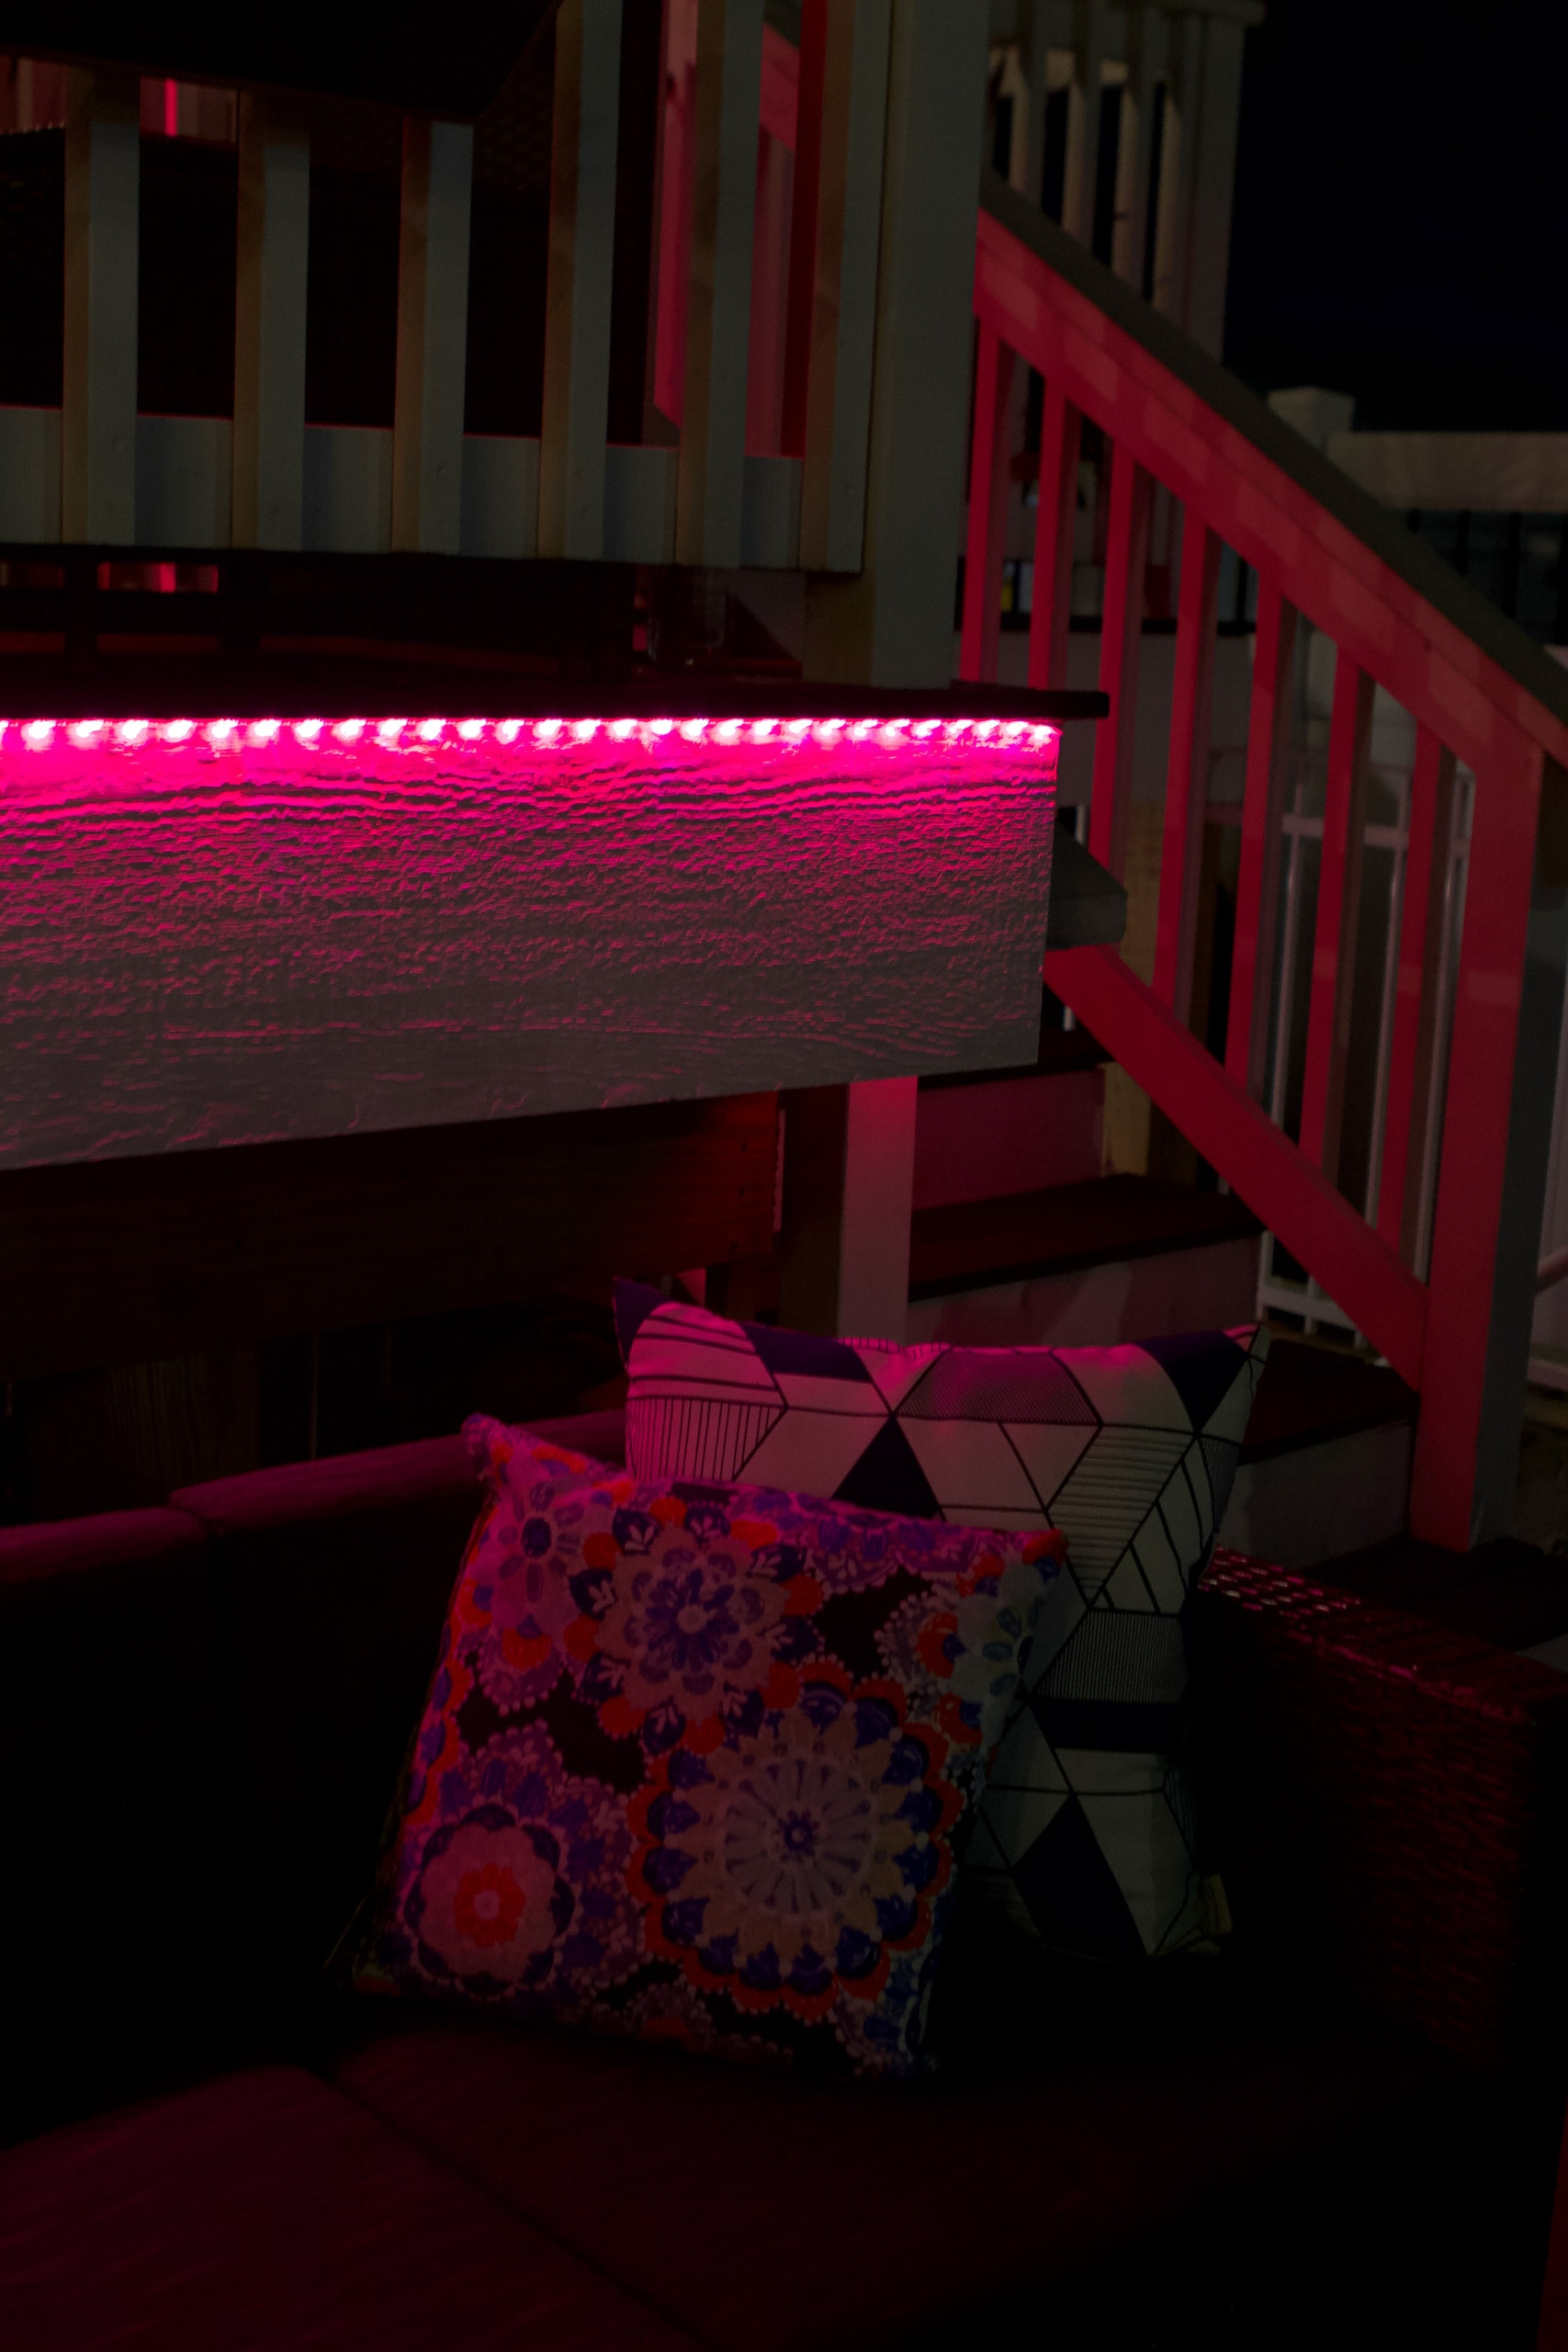 Red LED lights under the deck